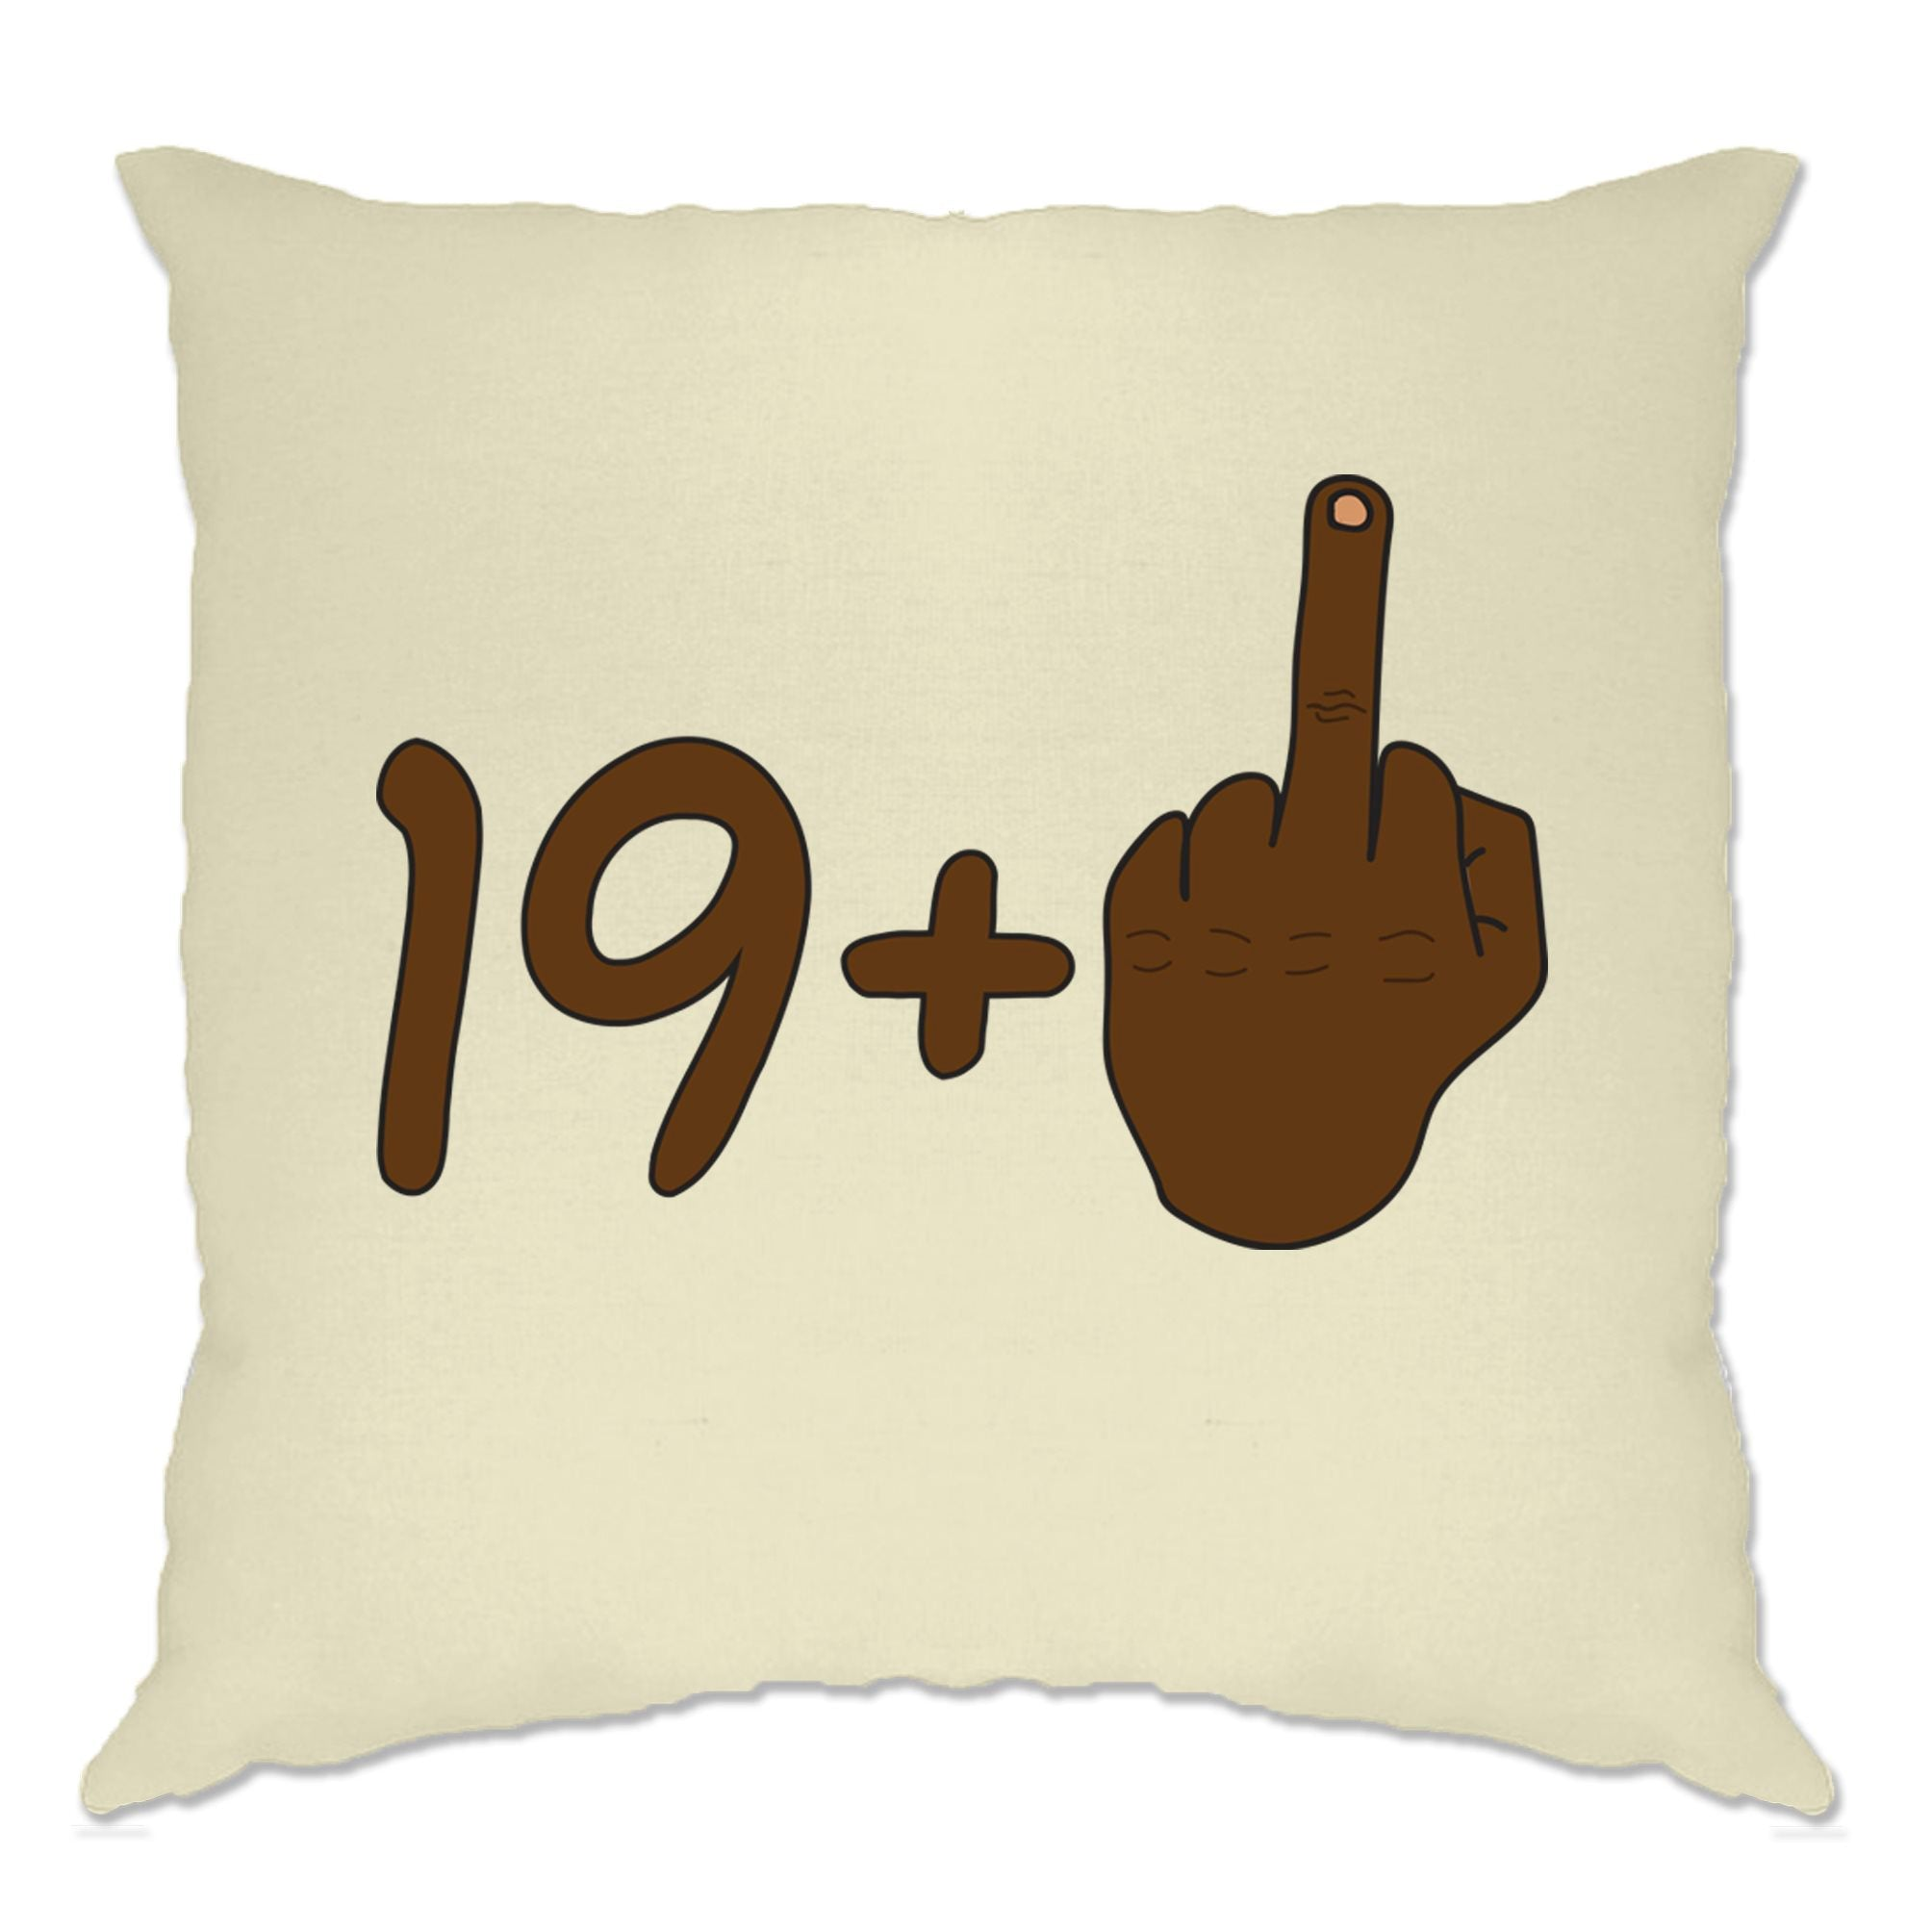 Rude 20th Birthday Cushion Cover Black Middle Finger